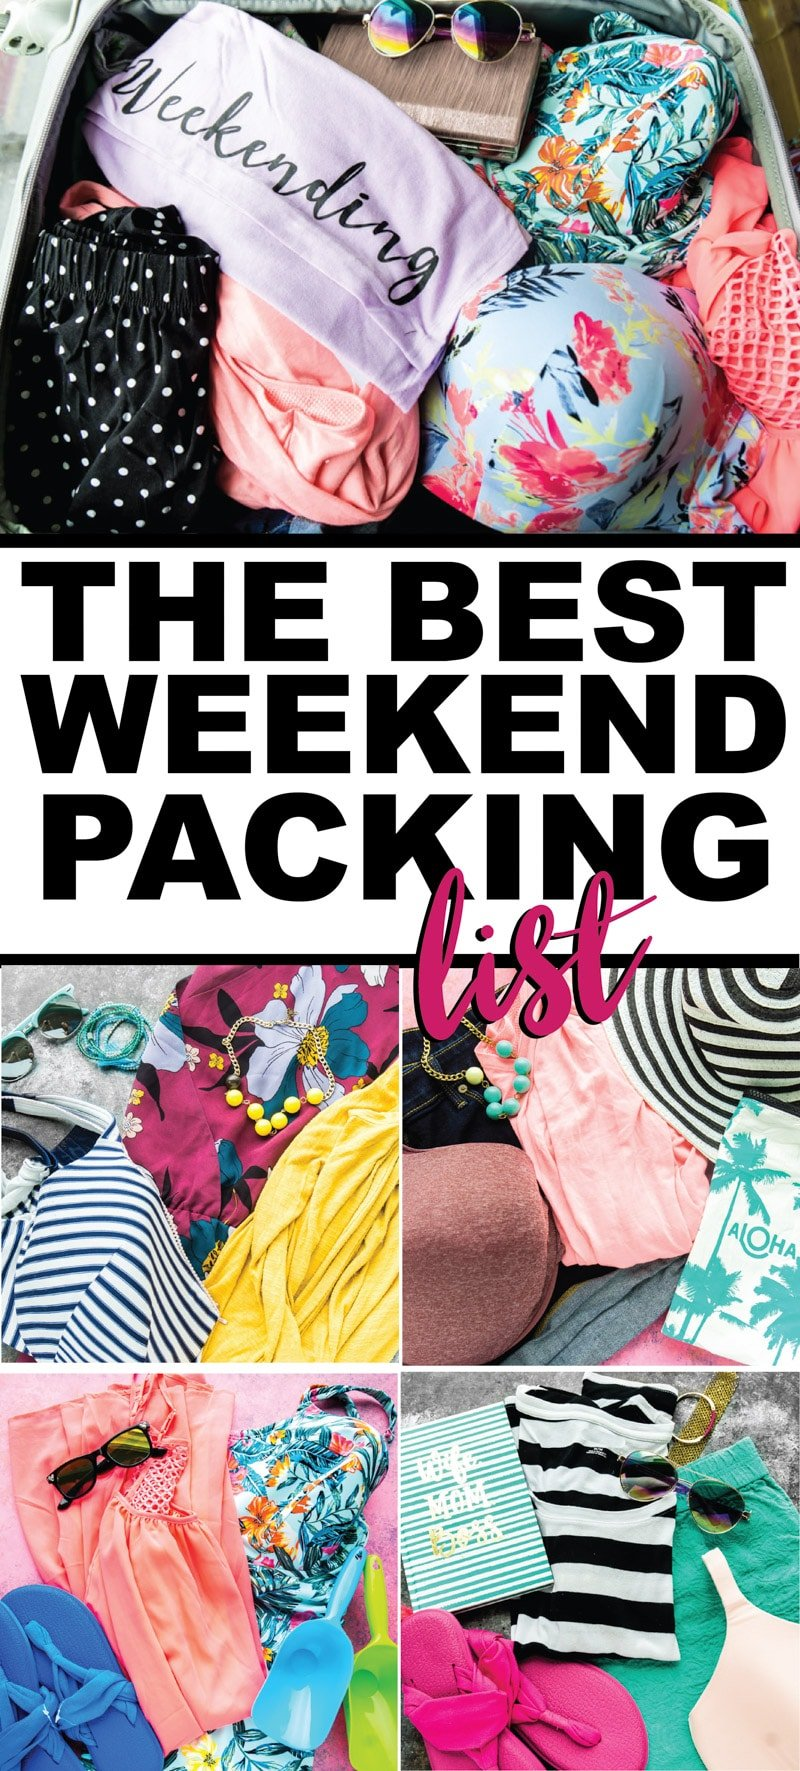 The ultimate weekend packing list whether you're going to the beach, on a romantic trip, or even just a 3-day adventure with the girls!